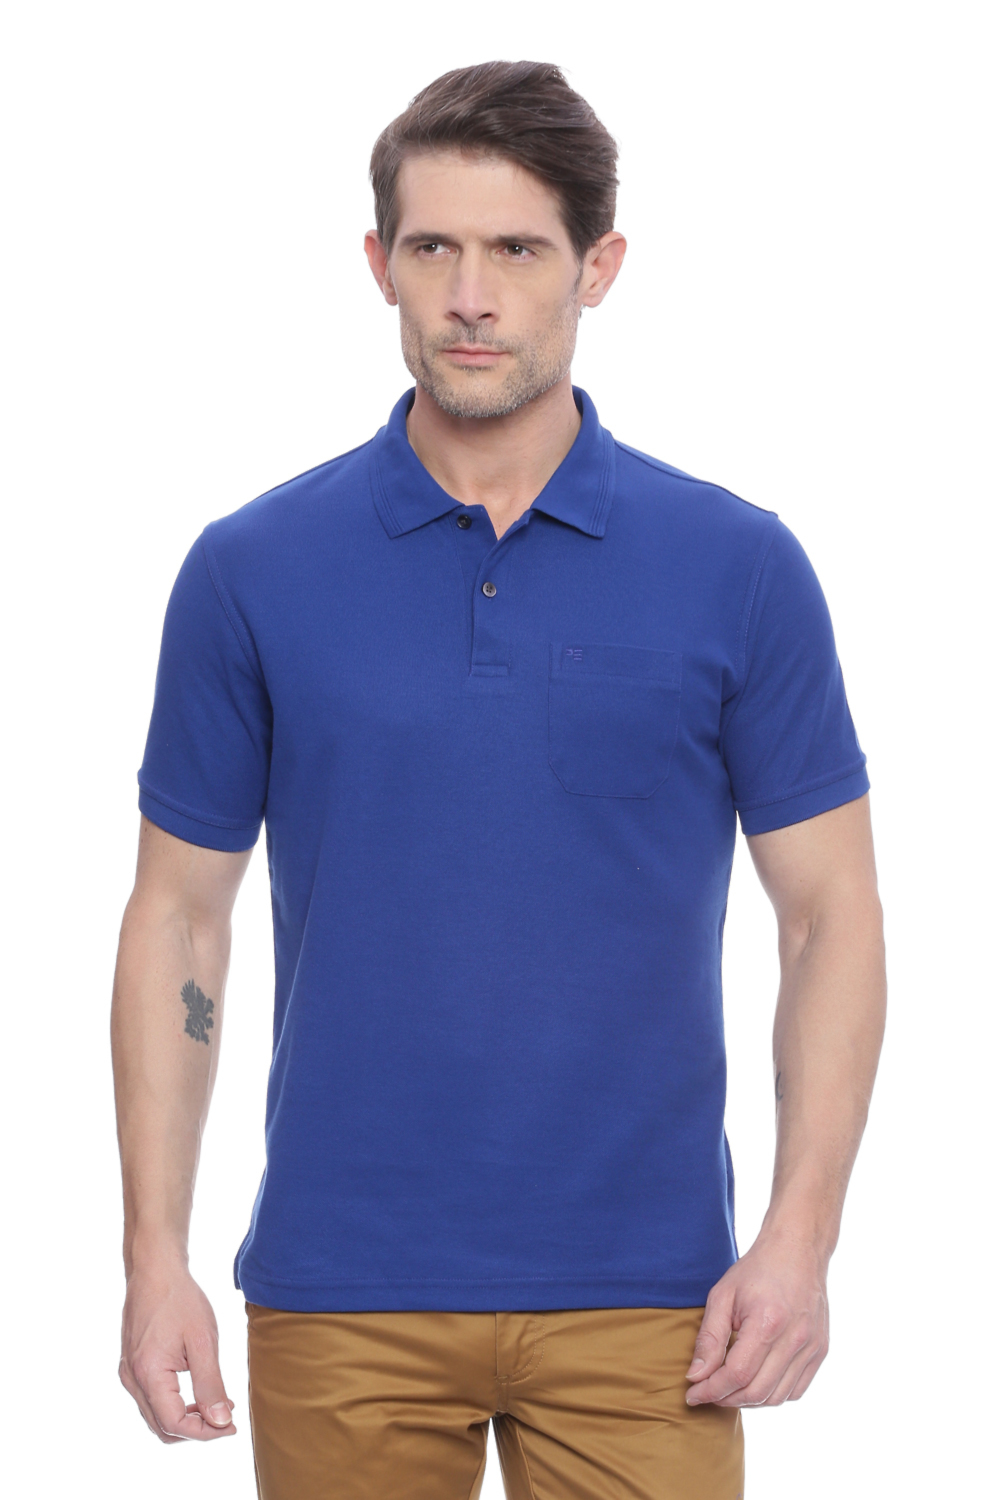 Men's Clothing Nub Xl Polo Shirt Factories And Mines